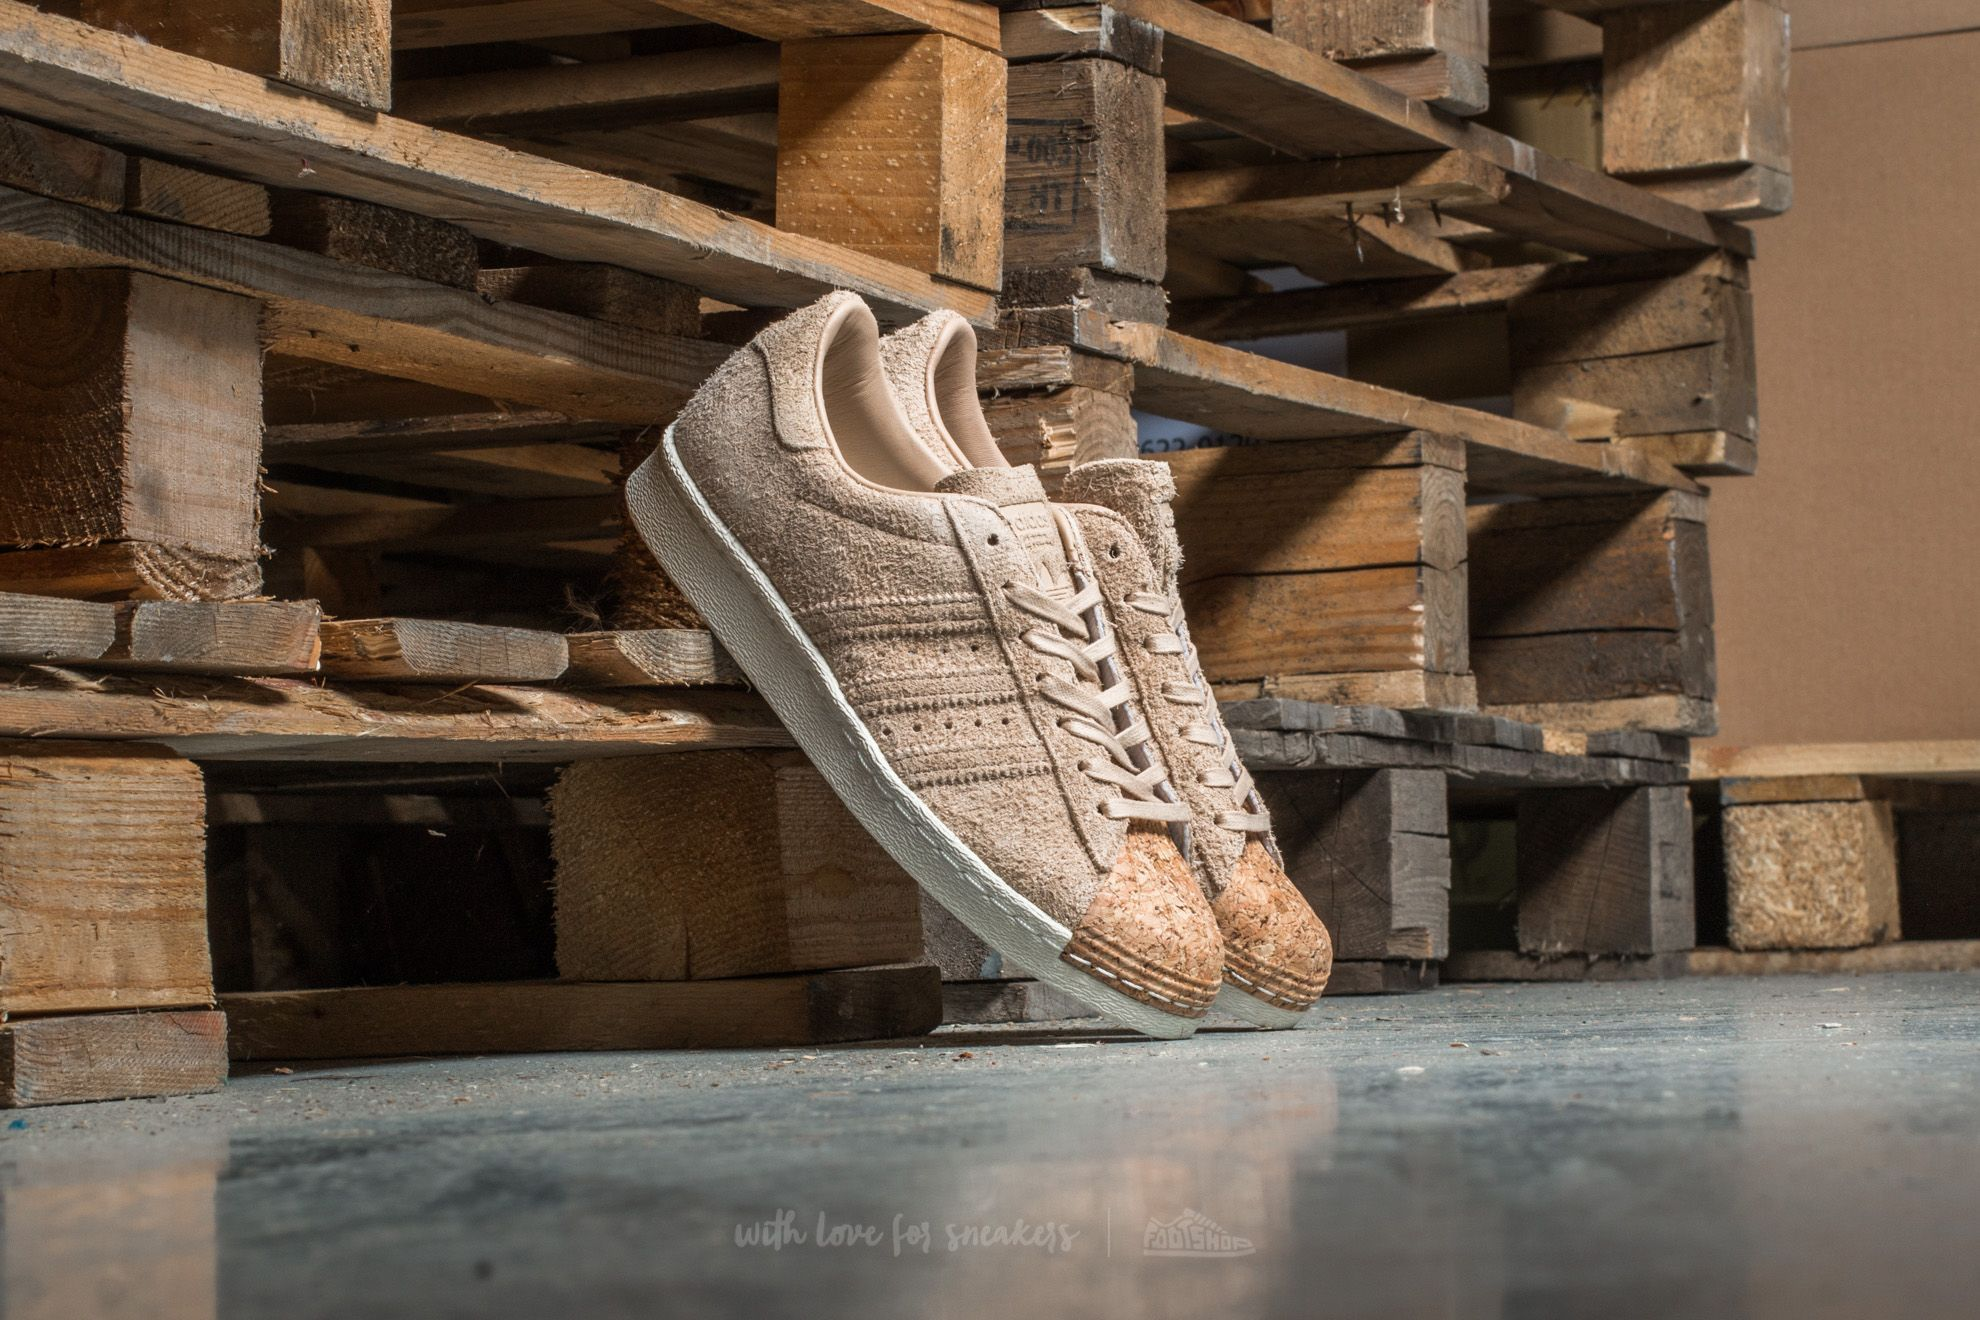 adidas Superstar 80s Cork W Pale Nude/ Pale Nude/ Off White - 12970